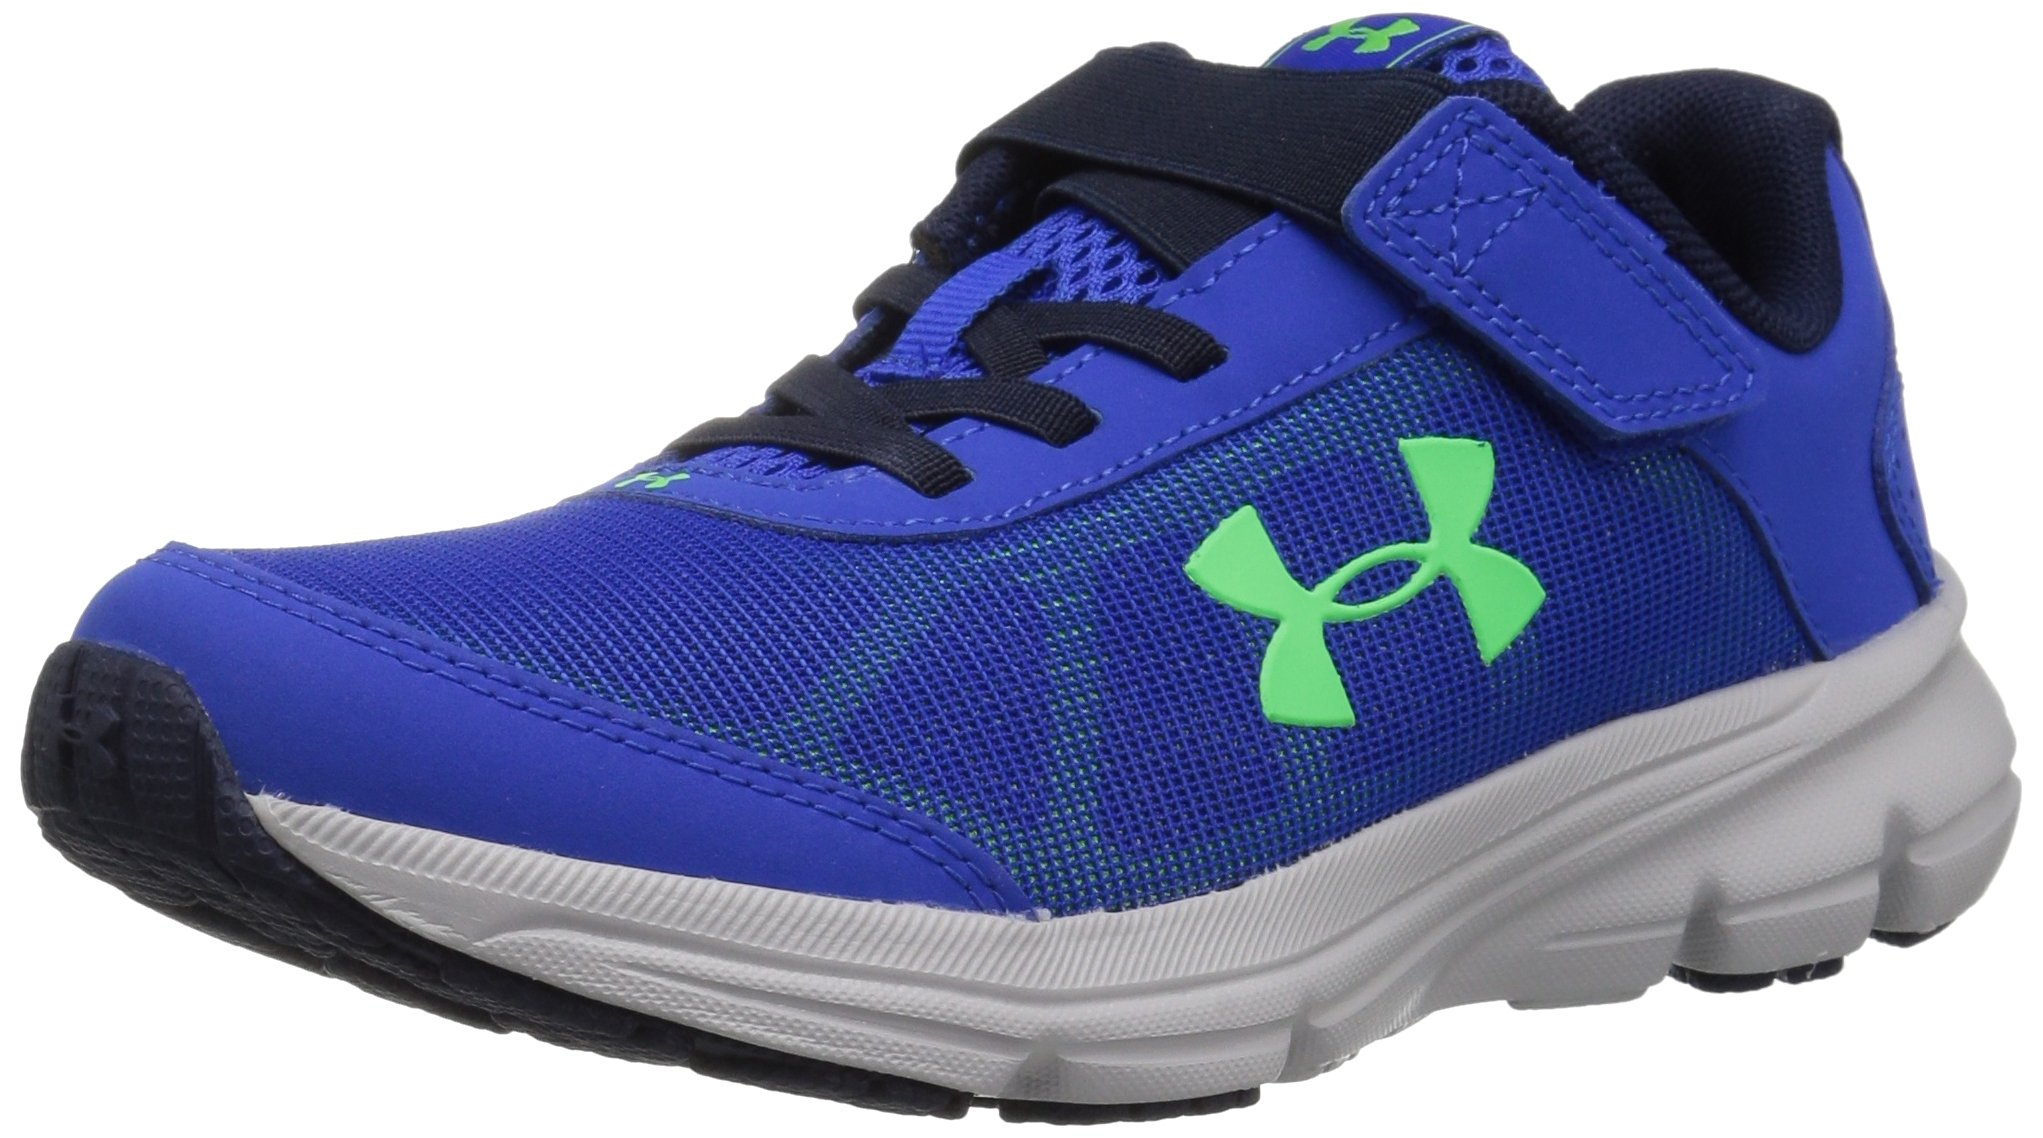 reputable site d6026 001c2 Under Armour Boys' Pre School Rave 2 Adjustable Closure Sneaker, Team Royal  (400